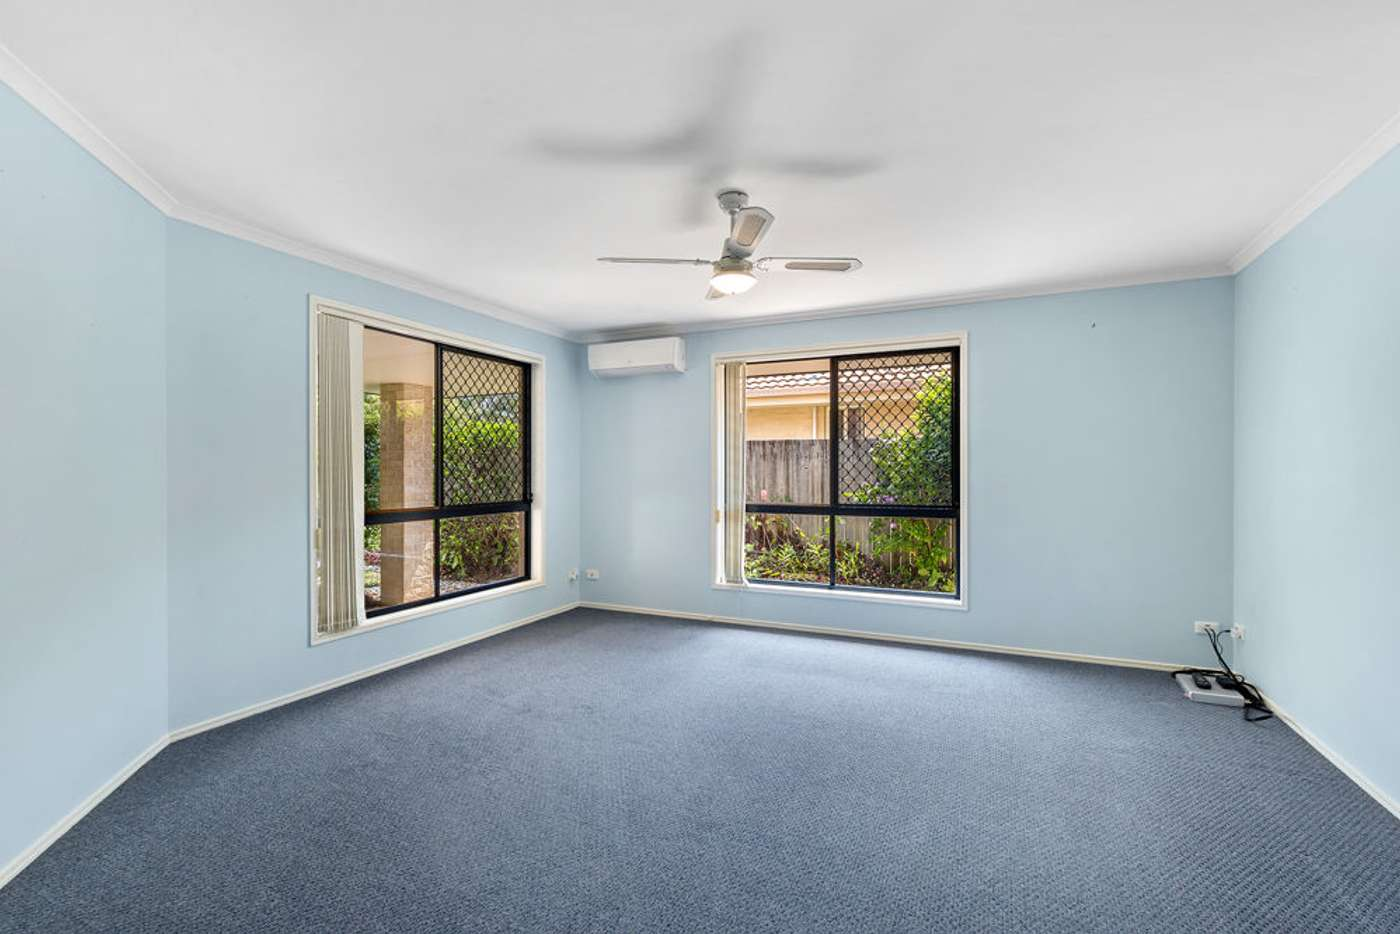 Sixth view of Homely house listing, 3 Galway Street, Caloundra West QLD 4551